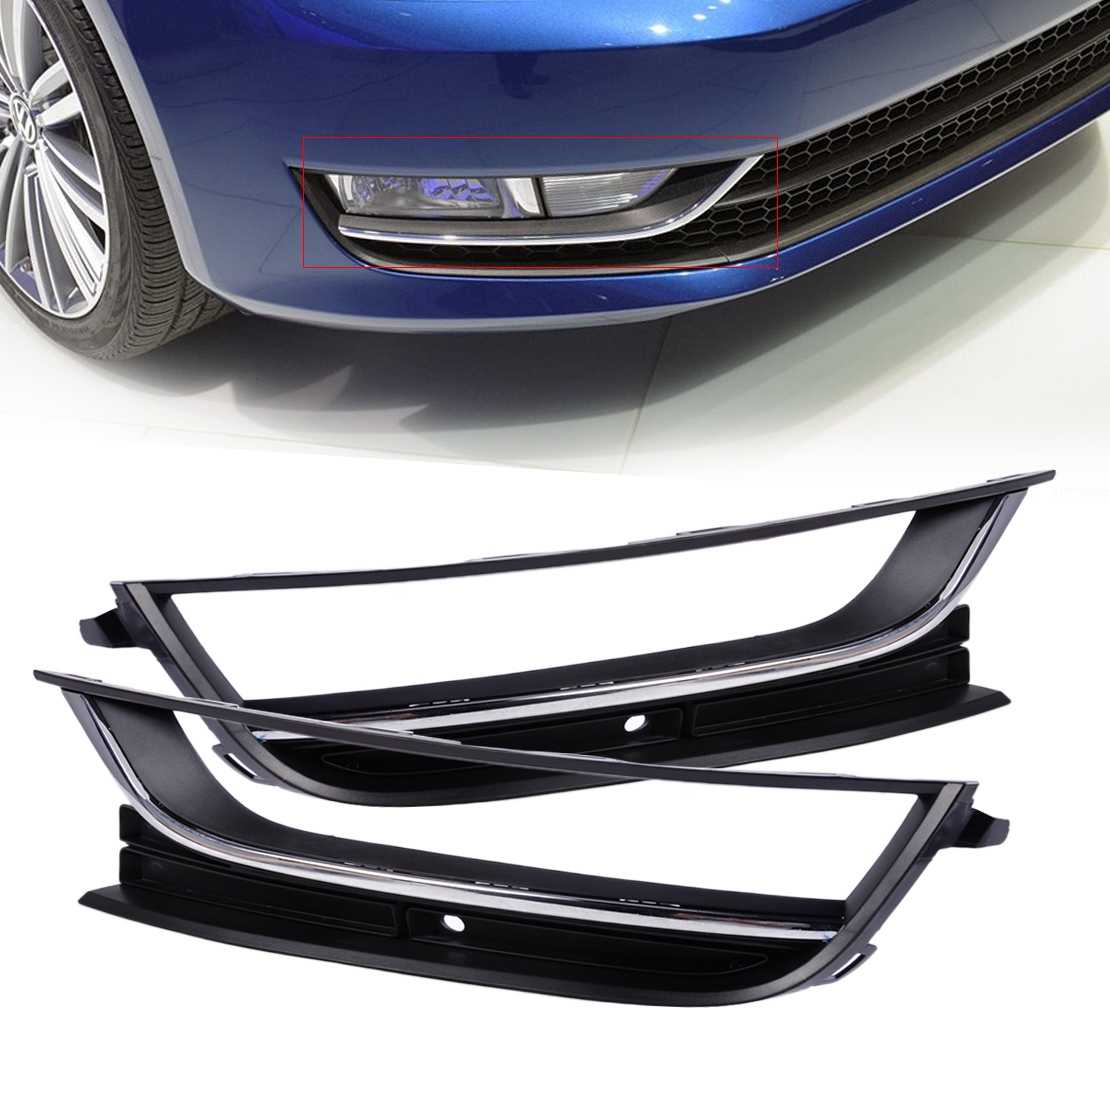 DWCX 56D853665 56D853666 Front Bumper Left + Right Fog Light Lamp Grille for VW Passat NMS 2012 2013 2014 only America Model front bumper fog light with 12v 55w 9006 bulbs for vw passat b6 3c 2006 2011 left right oem 3c0941699b 700b 992